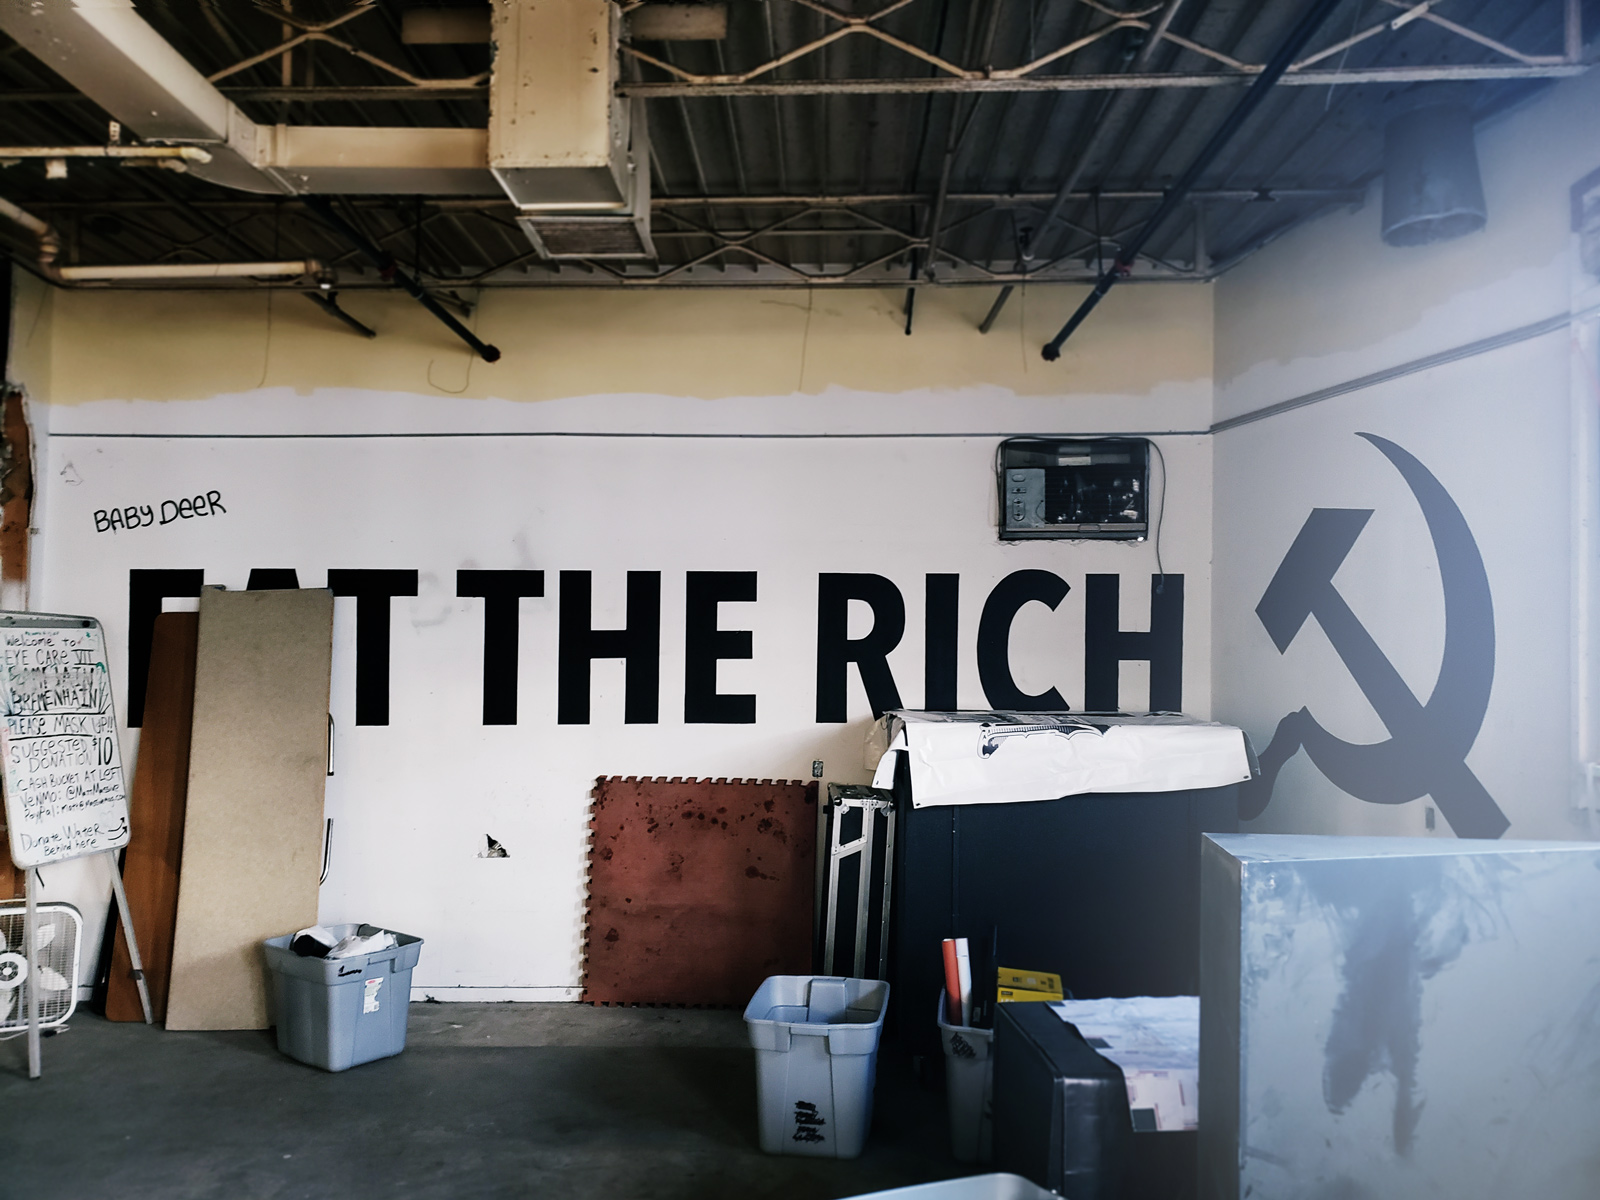 A wall with a mural proclaiming 'Eat the rich' followed by a communist icon.